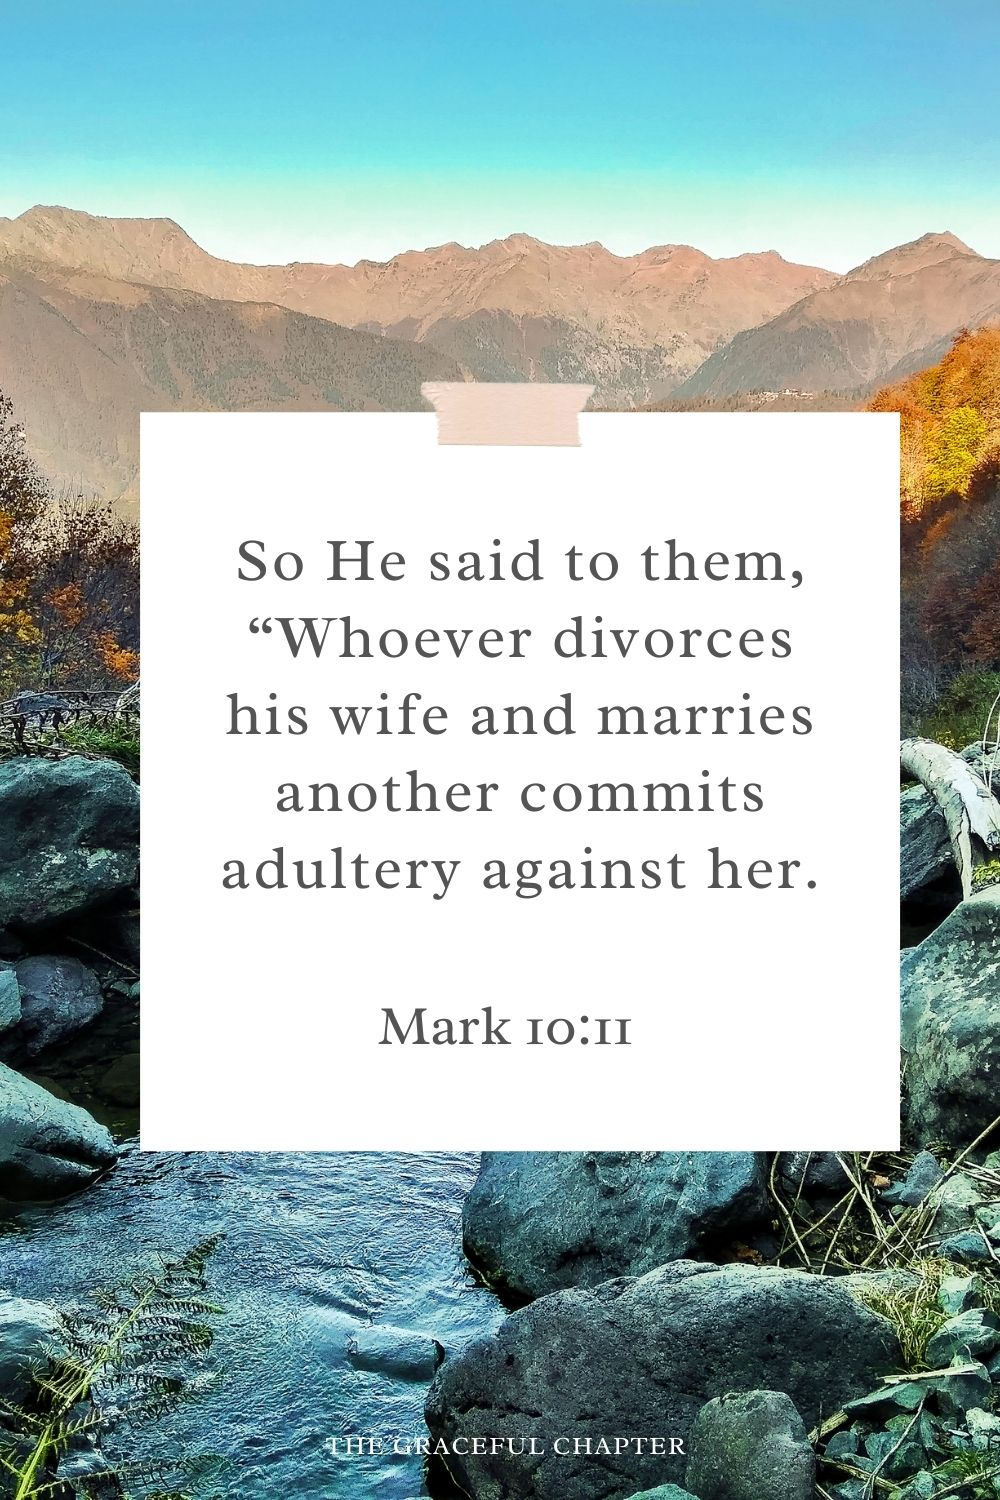 """So He said to them, """"Whoever divorces his wife and marries another commits adultery against her."""